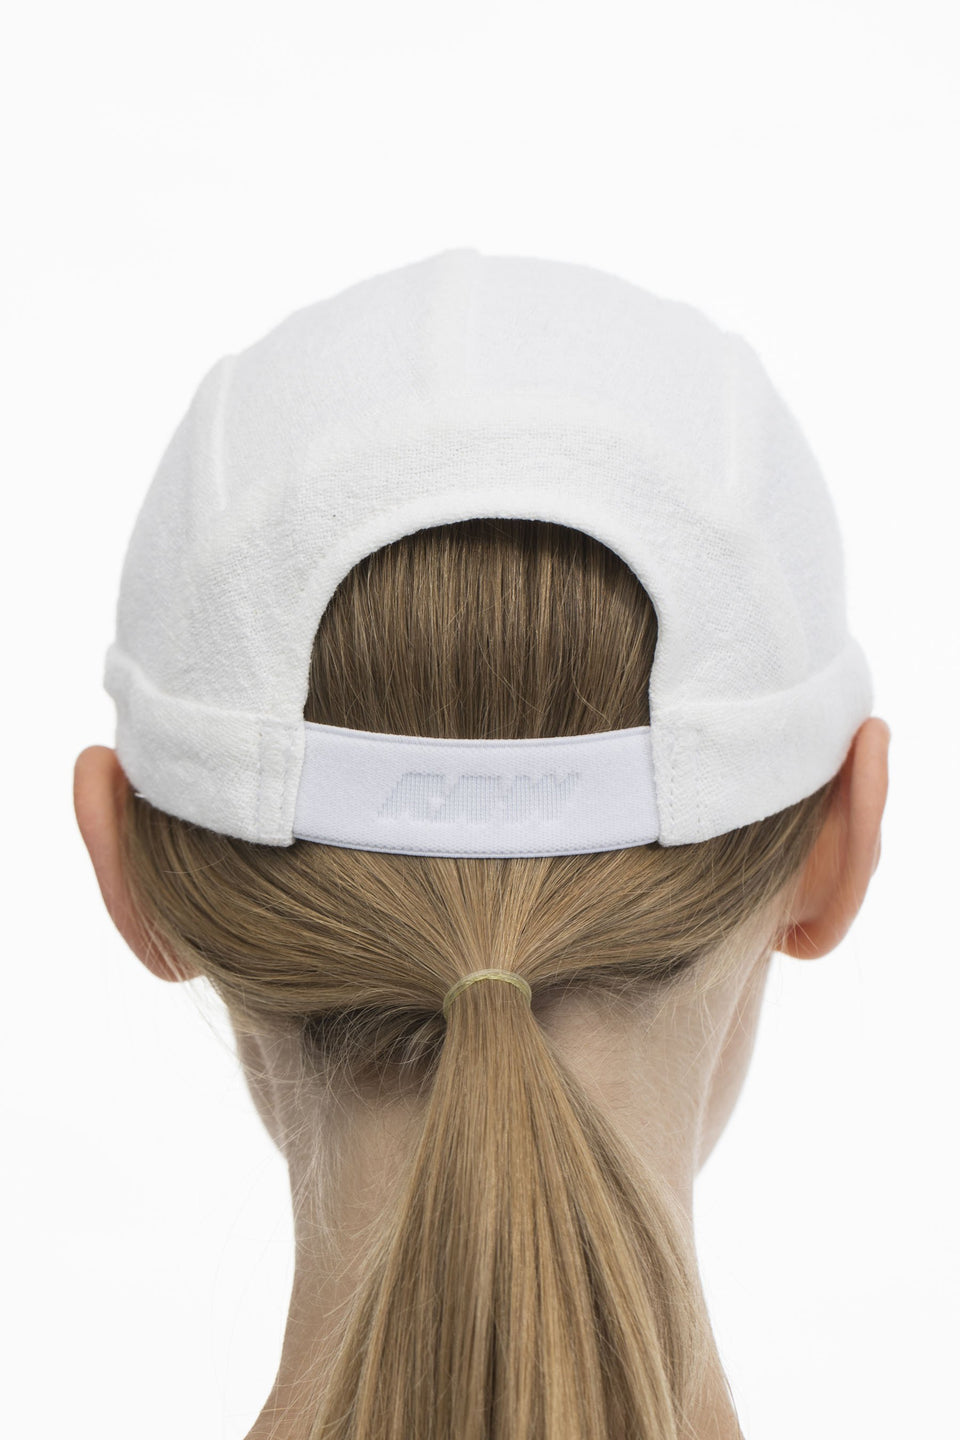 RAW U-Jogging Cap White